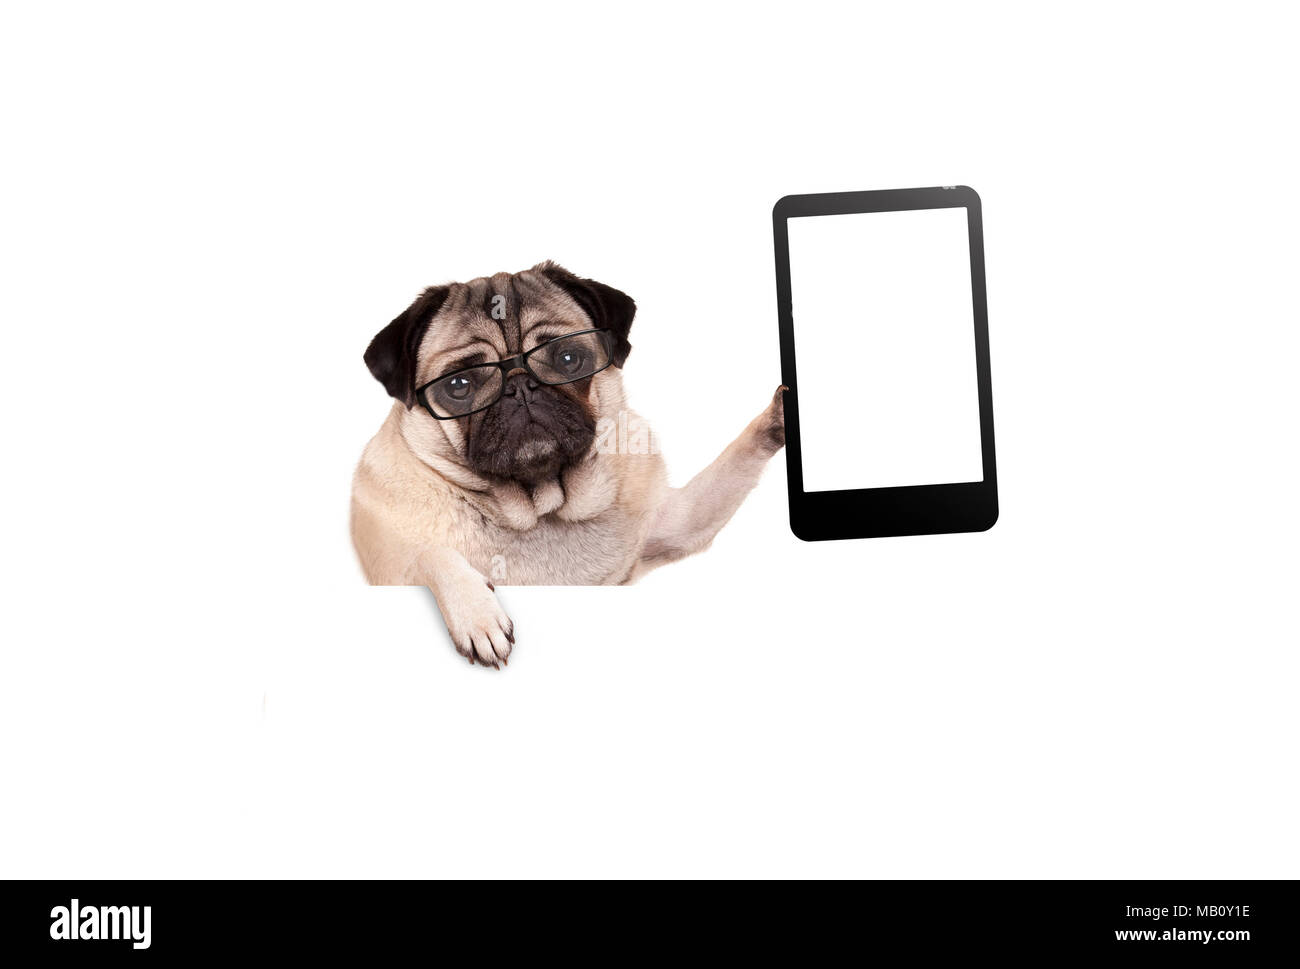 pug puppy dog with glasses holding up blank tablet or mobile phone, hanging on white banner, isolated - Stock Image